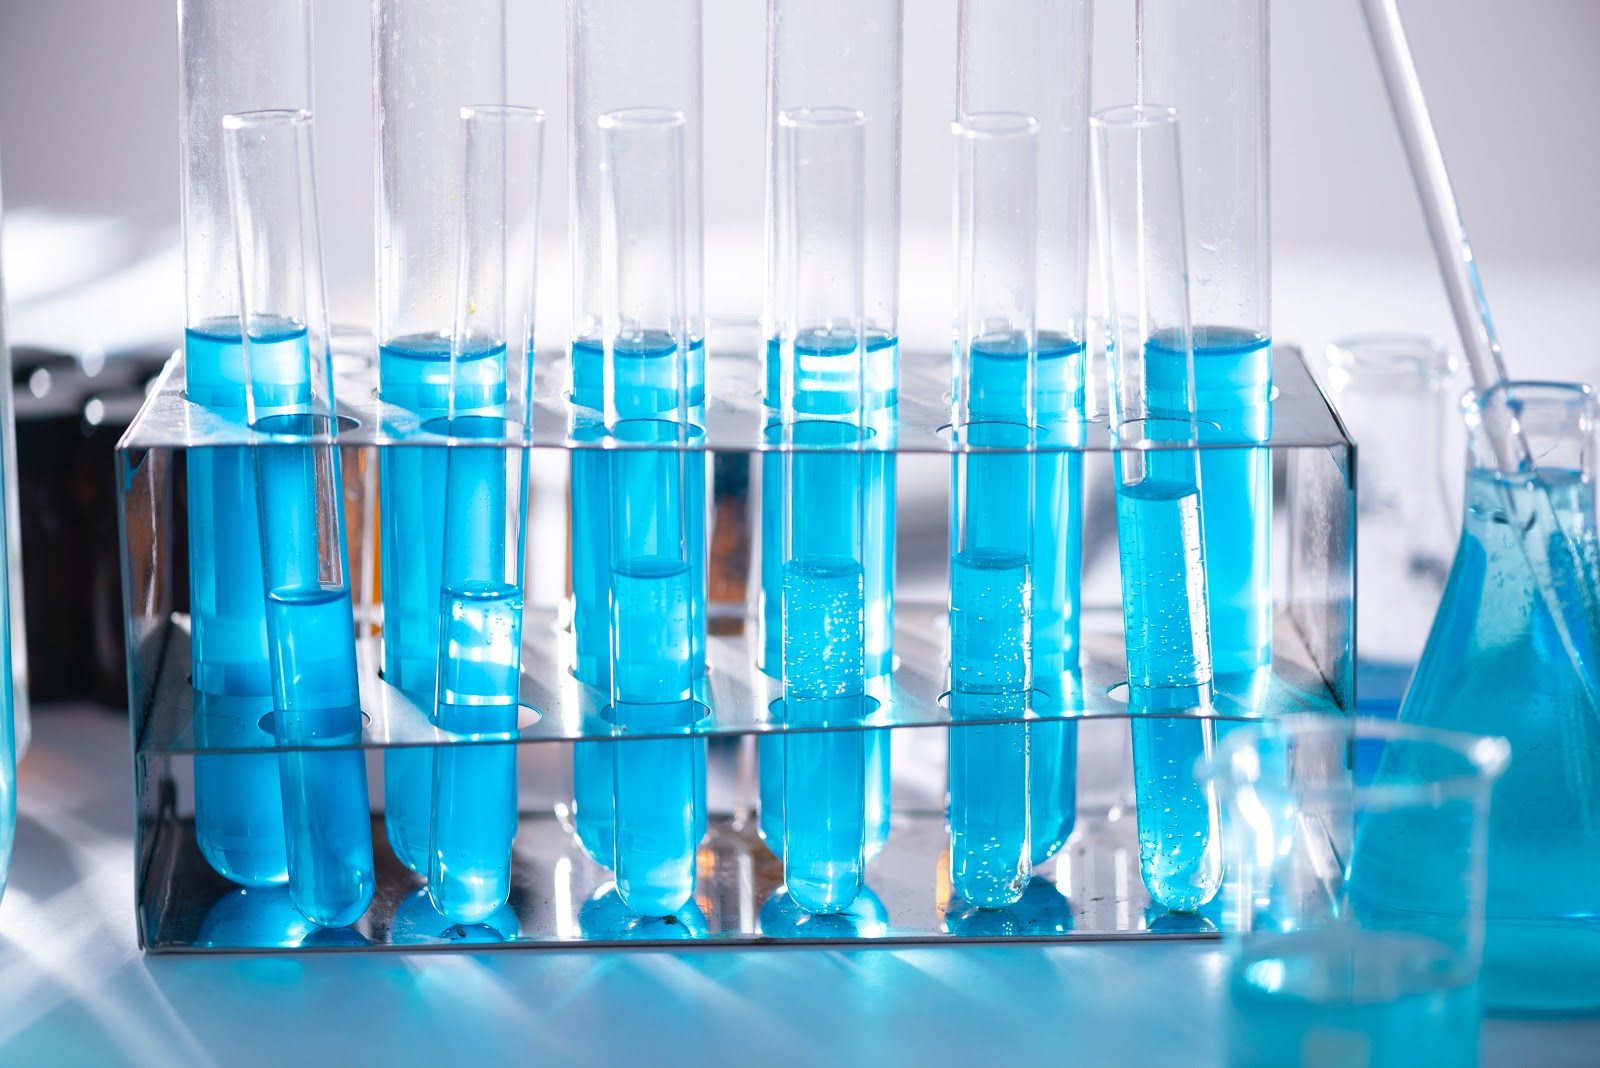 Test tubes filled with blue liquid